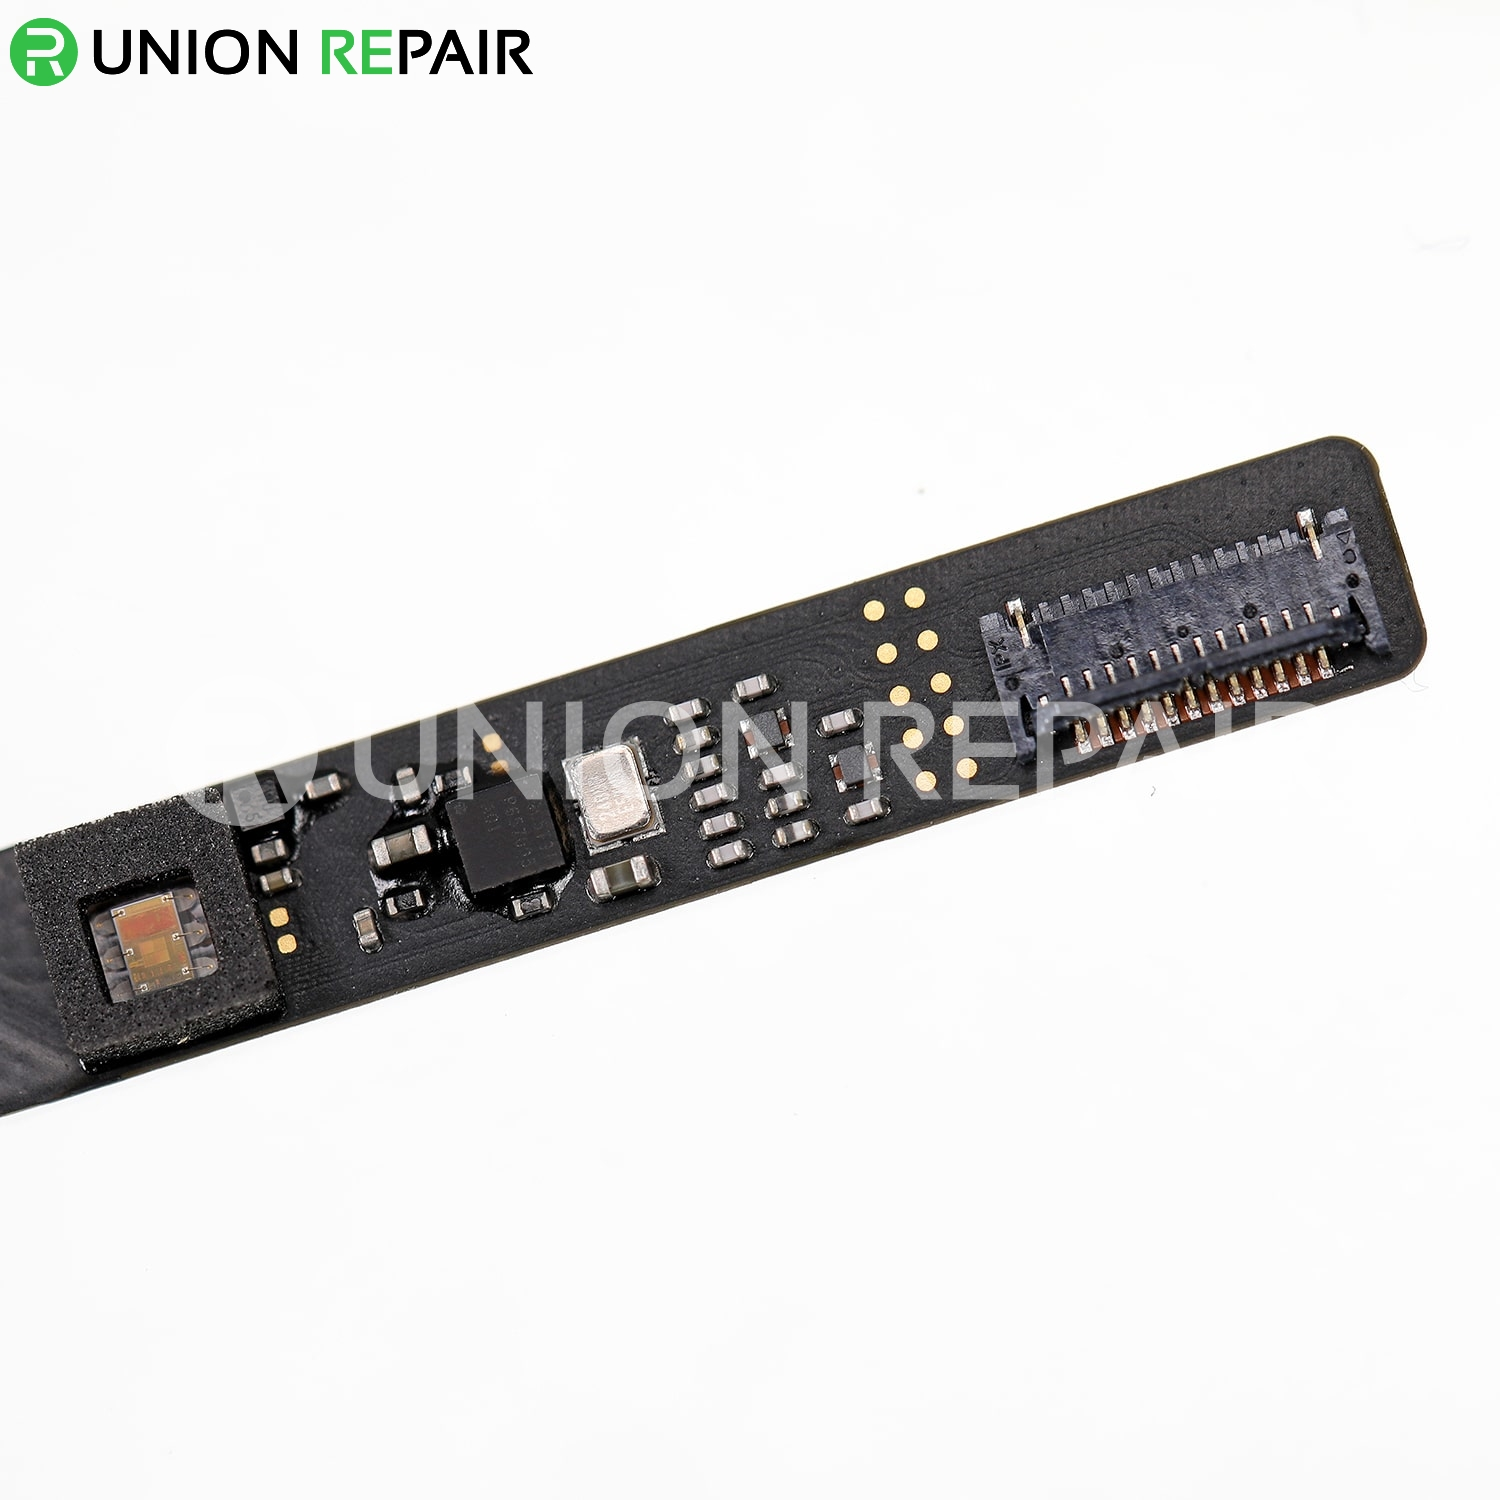 Front Camera for MacBook Pro A1706/A1708 (Late 2016, Mid 2017)